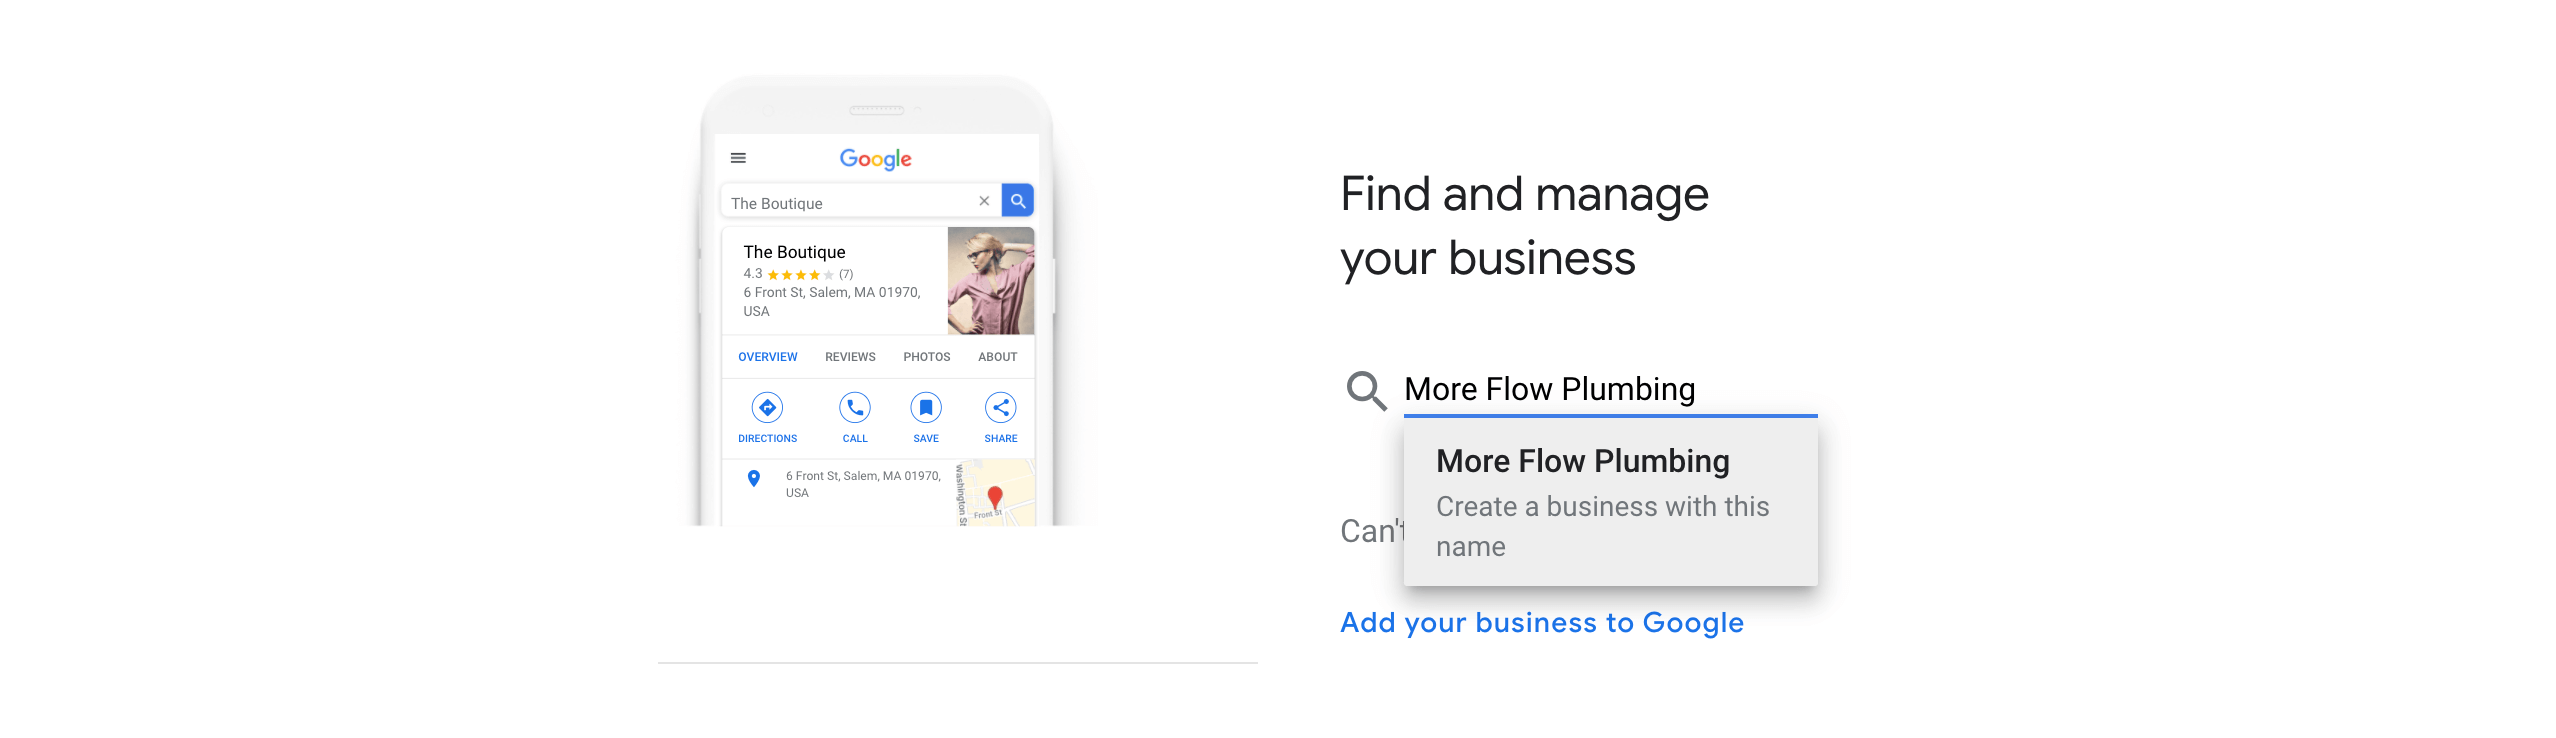 Adding a new business to Google.